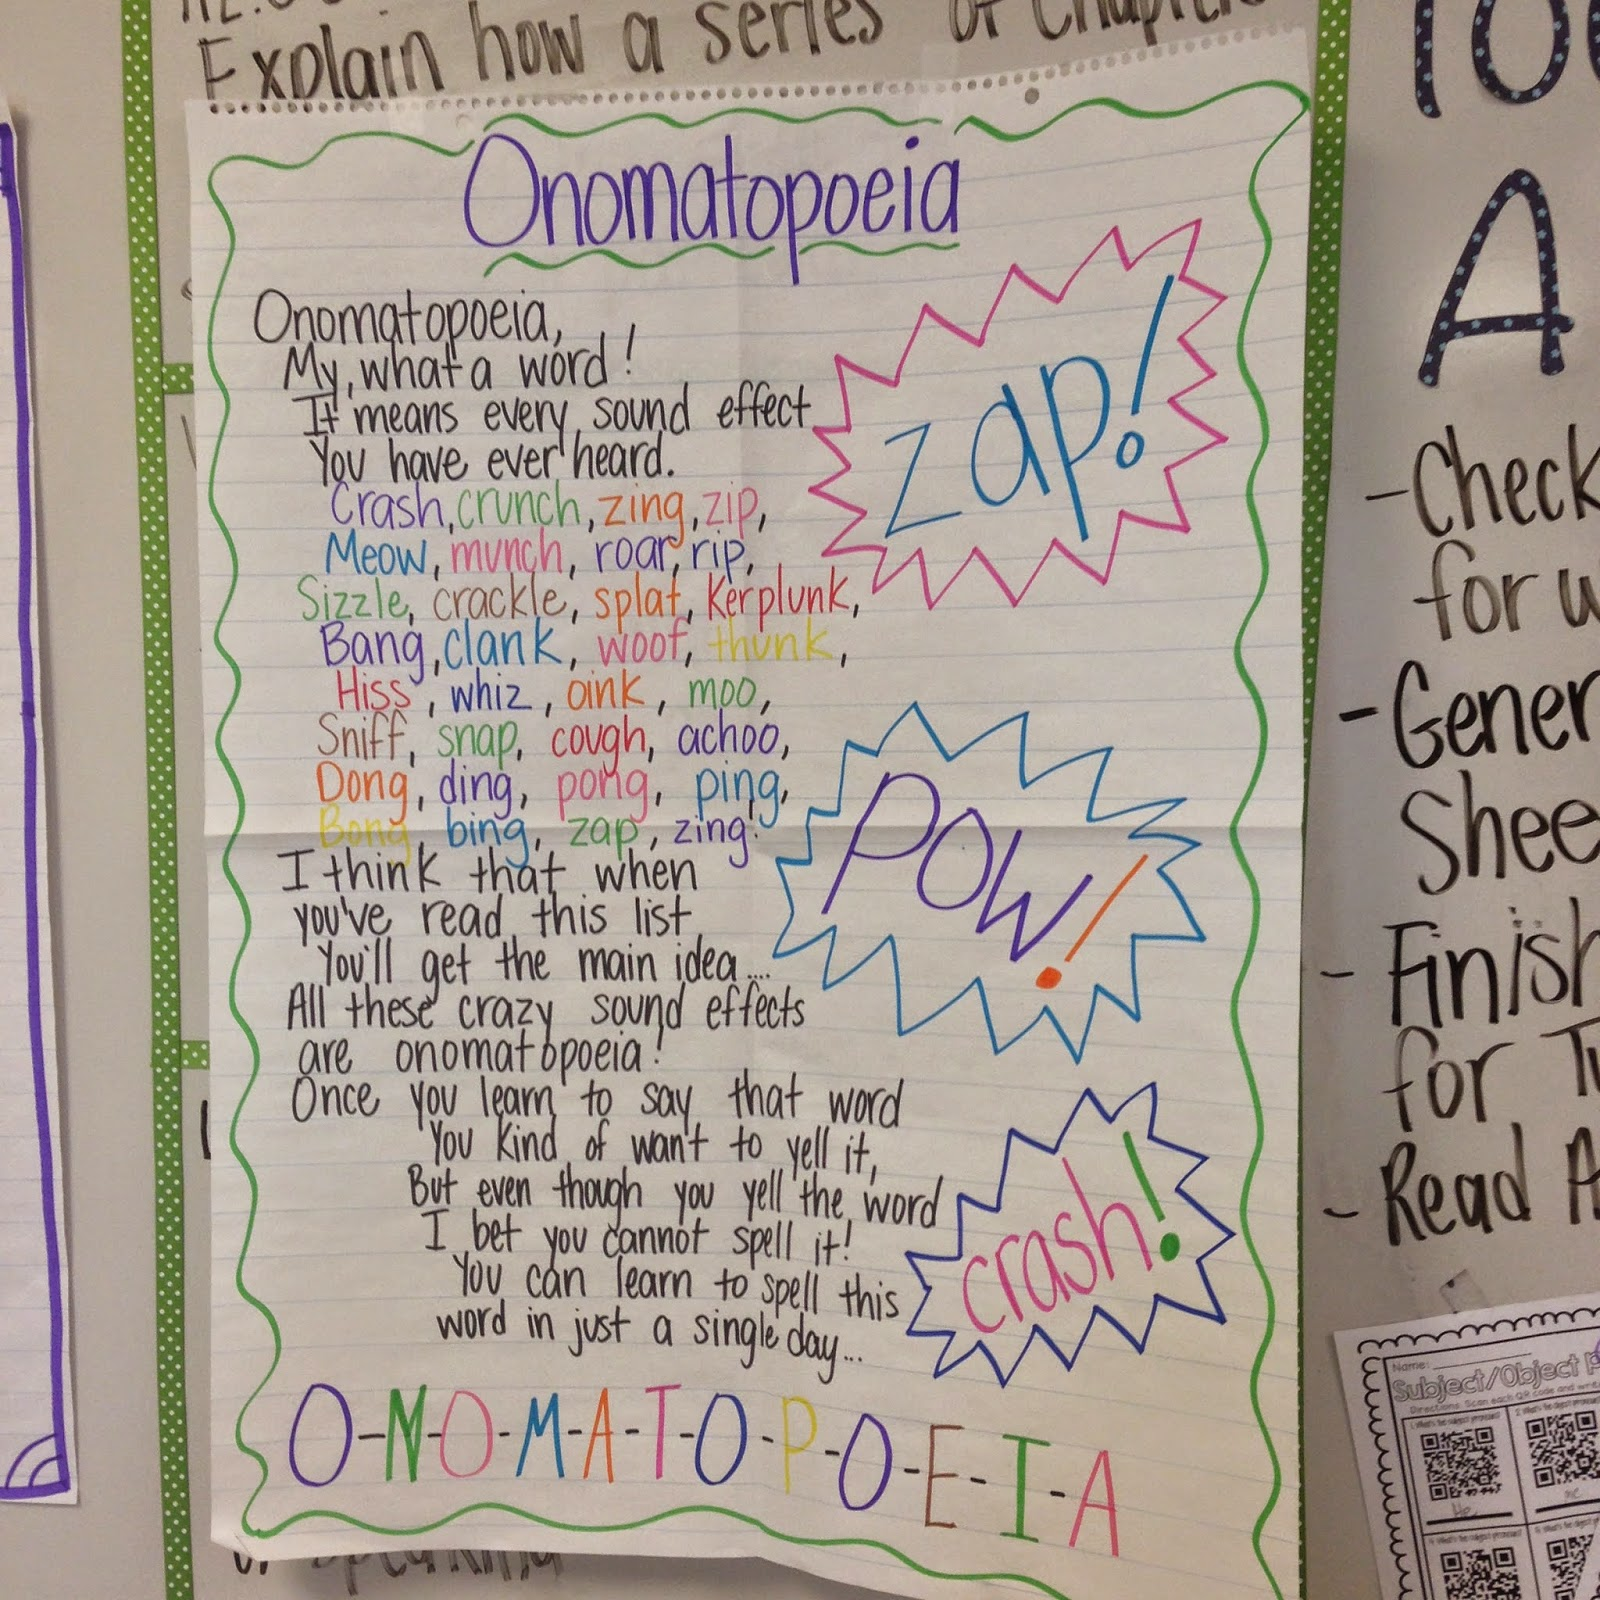 Onomatopoeia Poems About Love